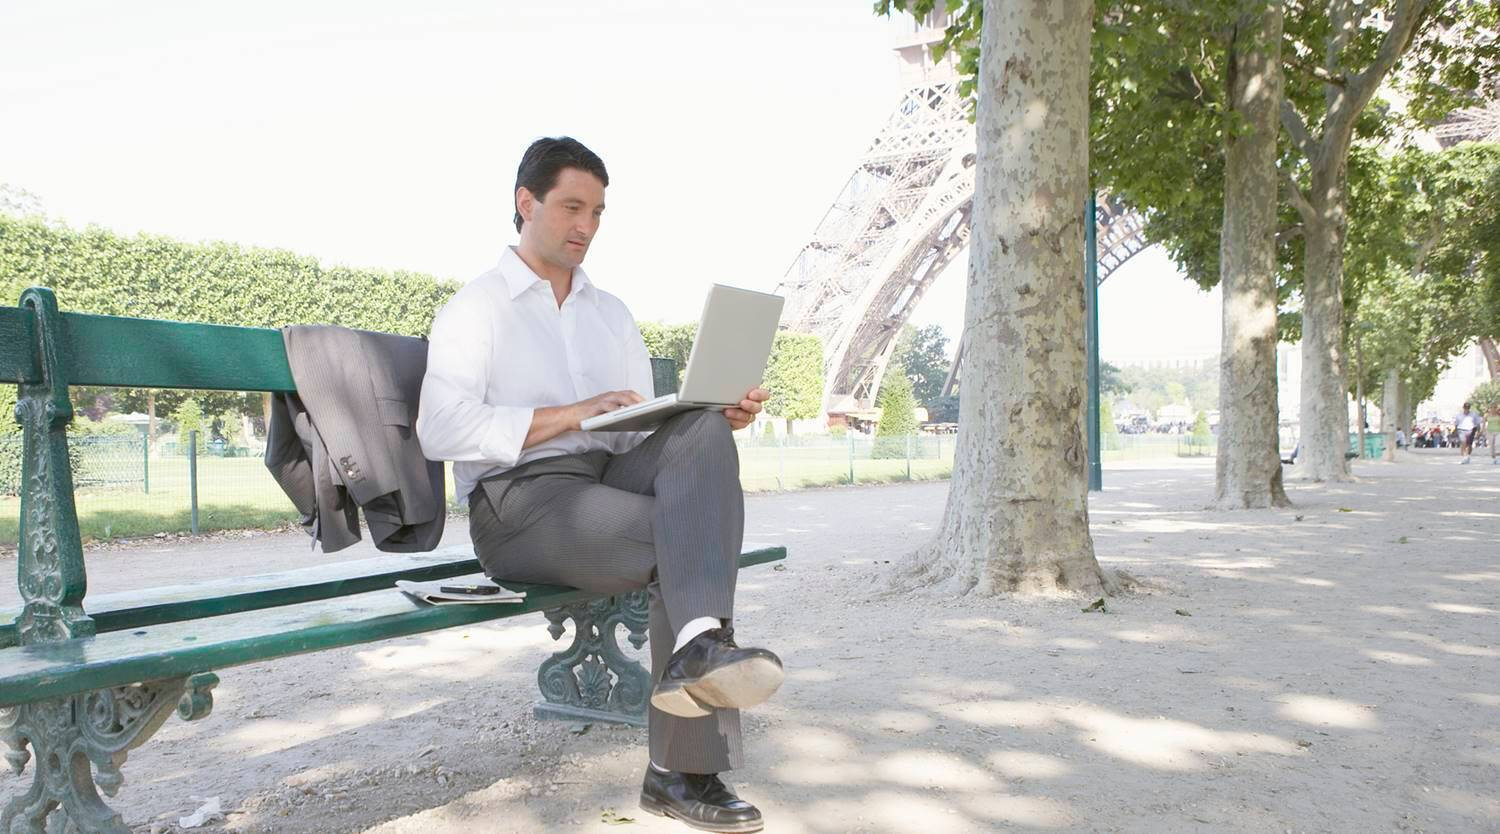 france no emails after work hours, france great place to work, right to disconnect, work-life balance, best places to work, bet work practices, indian express, indian express news